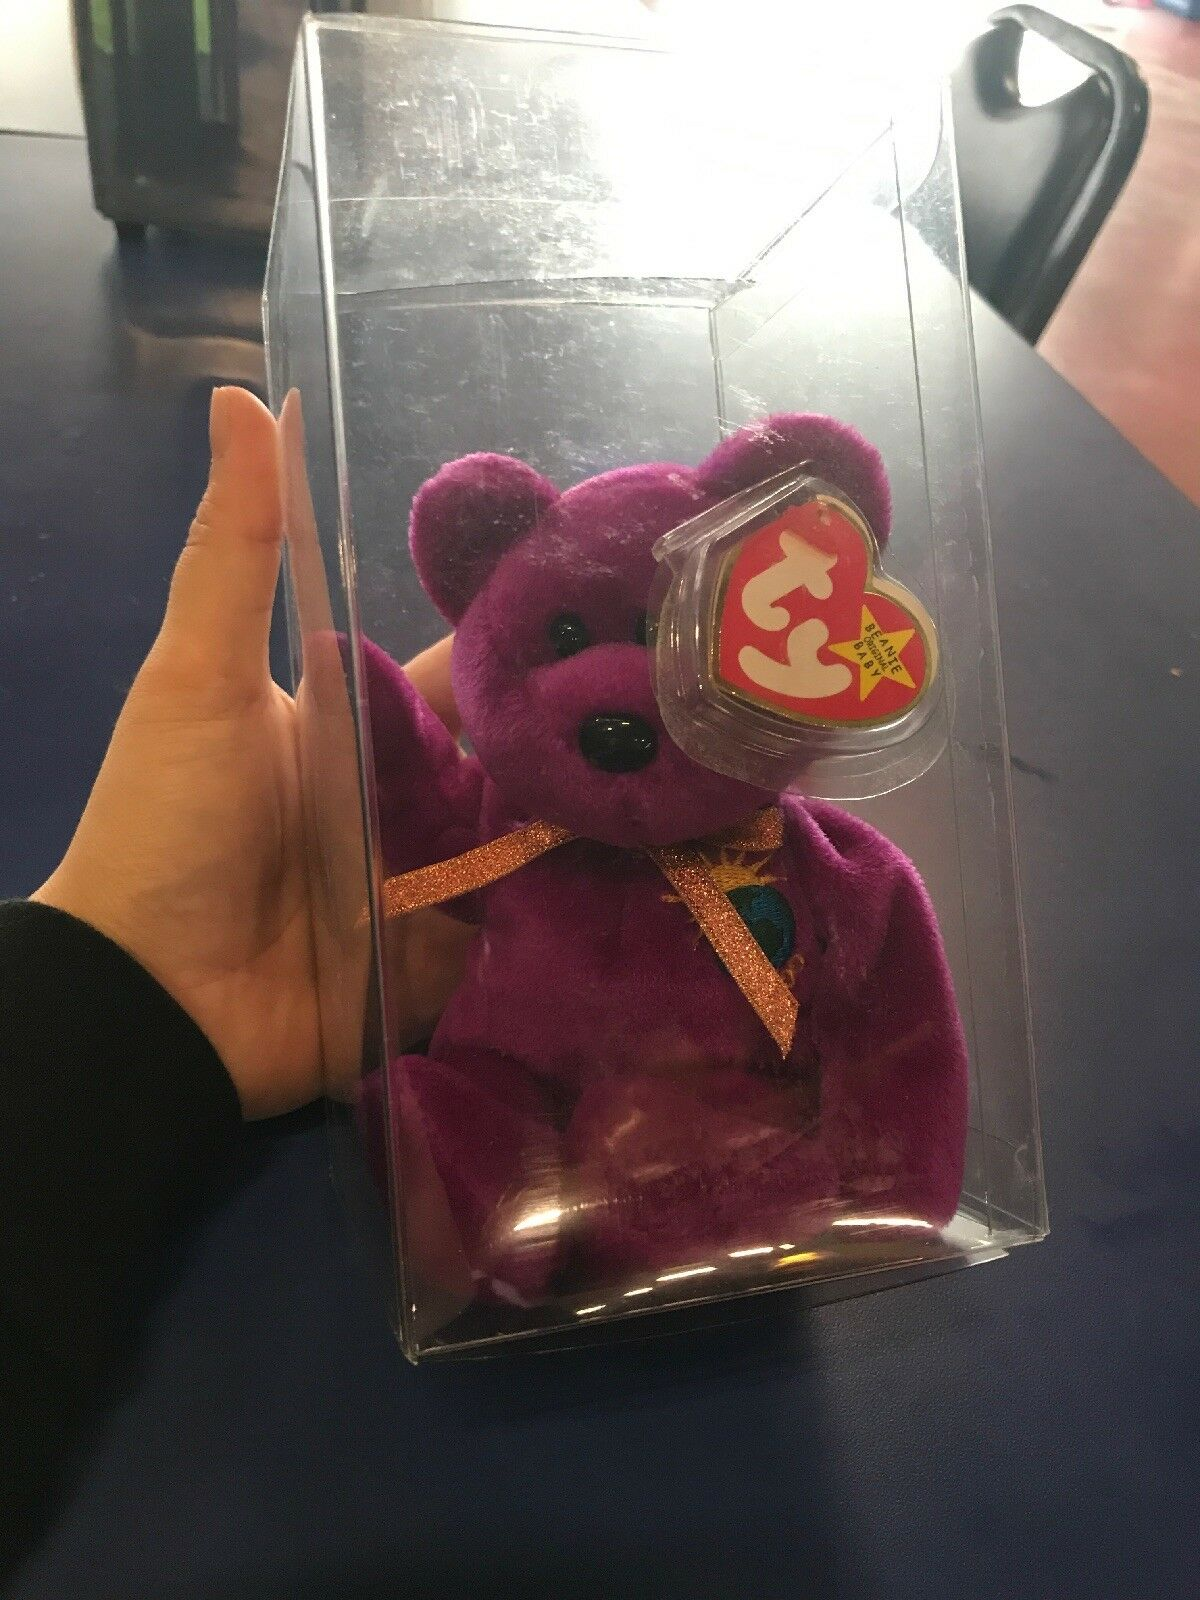 TY Millennium Bear BEANIE BABY with tags and mistakes - 1999